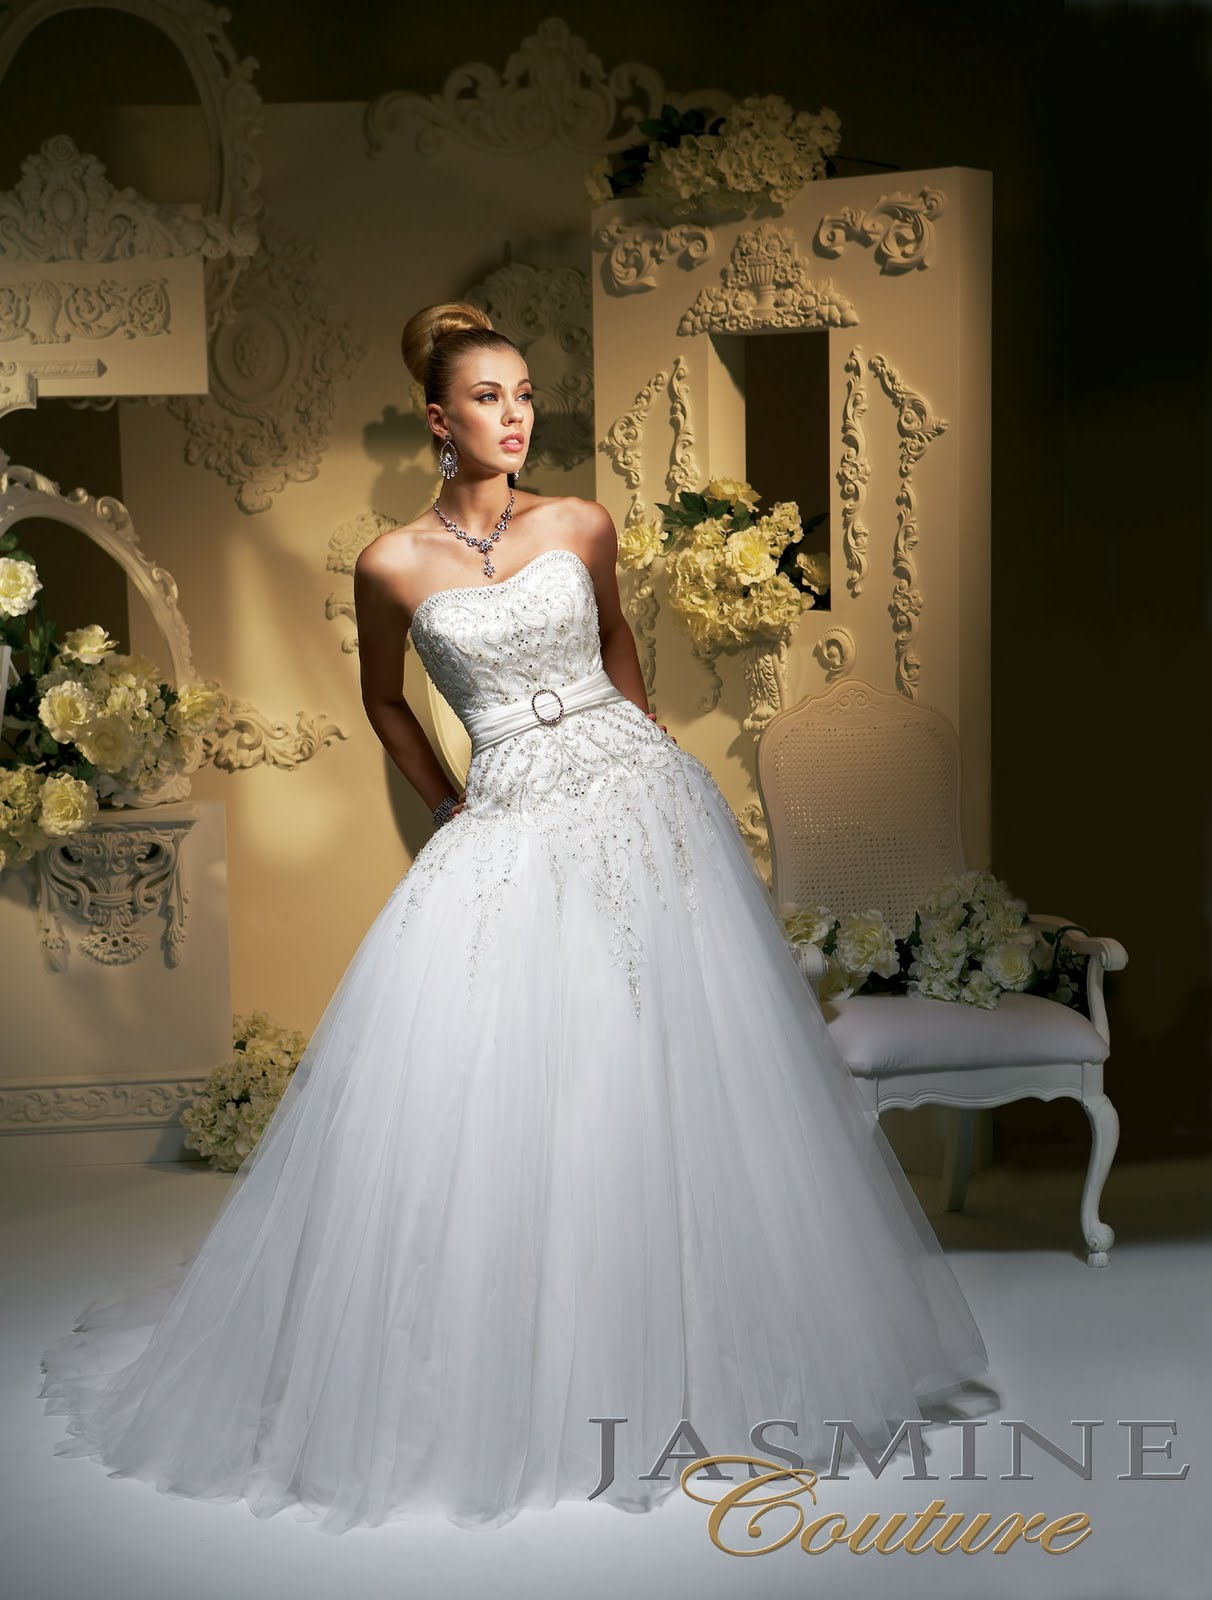 temple ready wedding dresses photo - 1